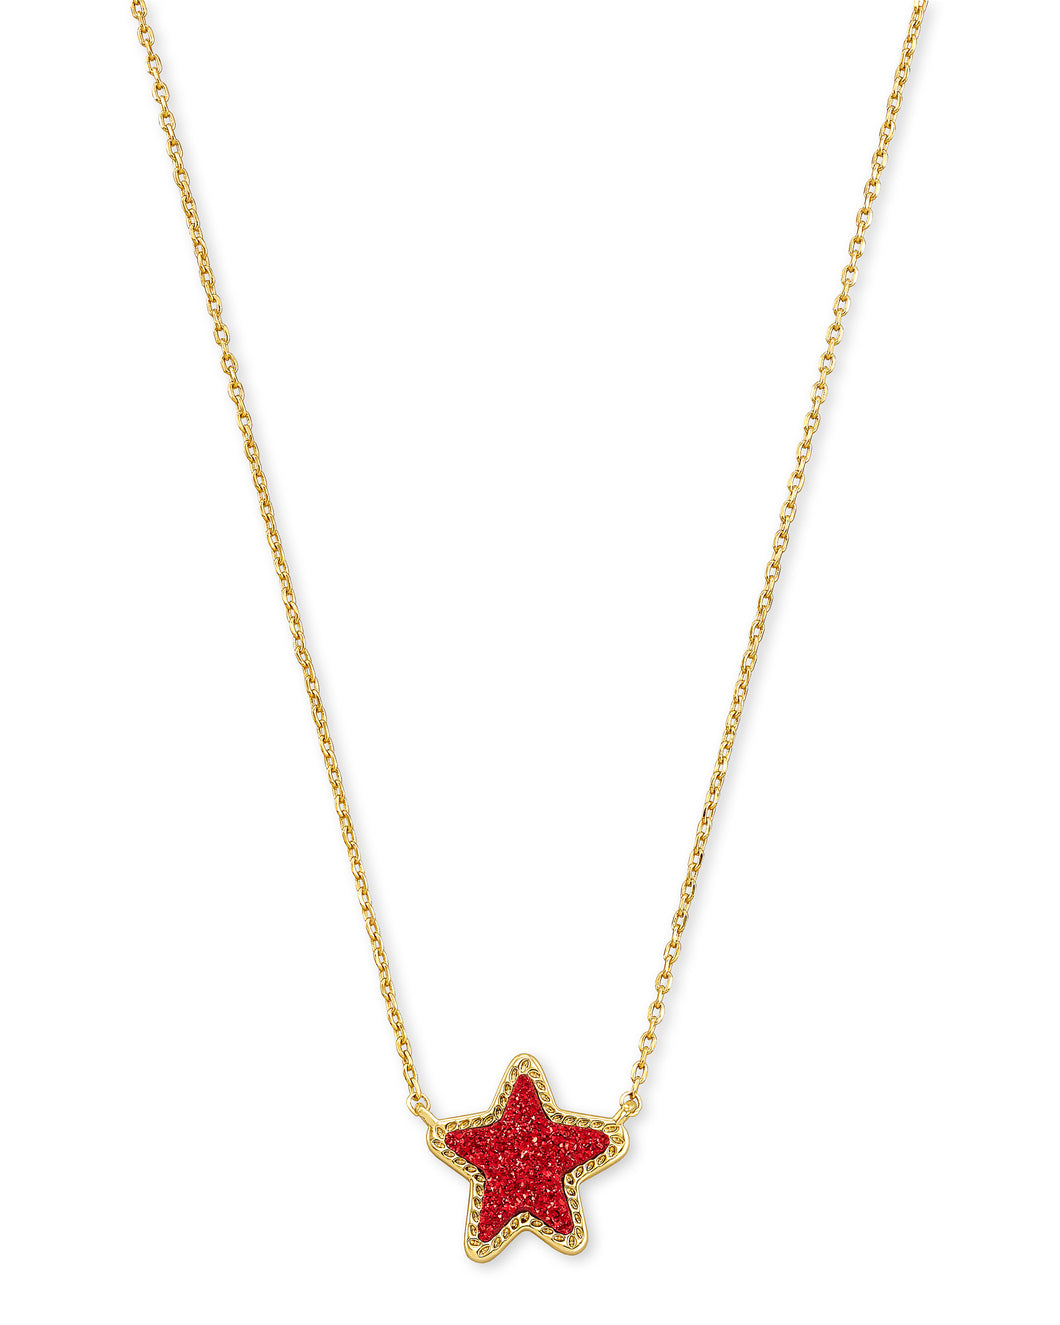 Kendra Scott Pendant Necklace In Bright Red Drusy